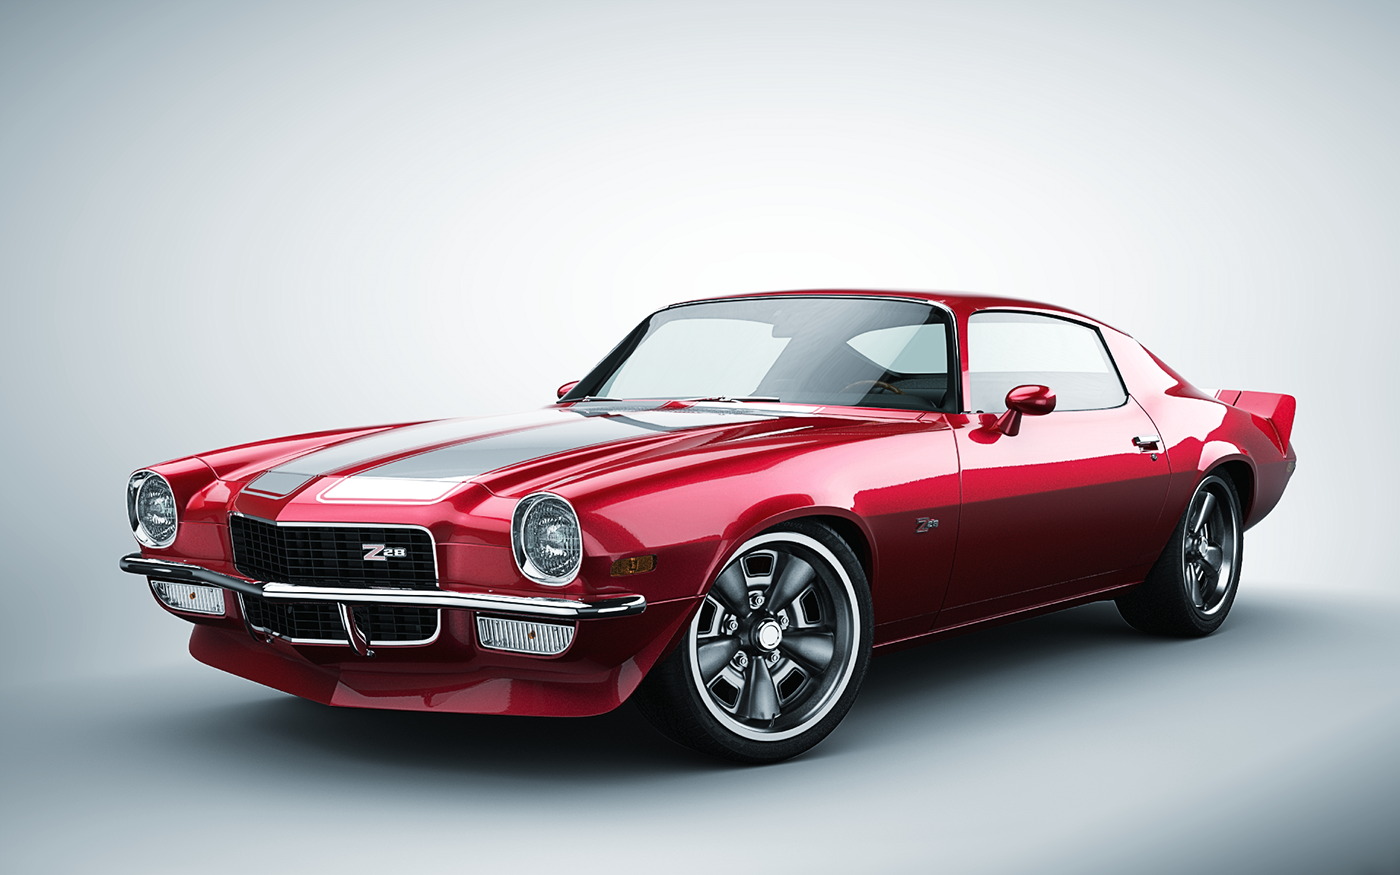 Camaro z28 1970 on behance - Camaro z28 ...